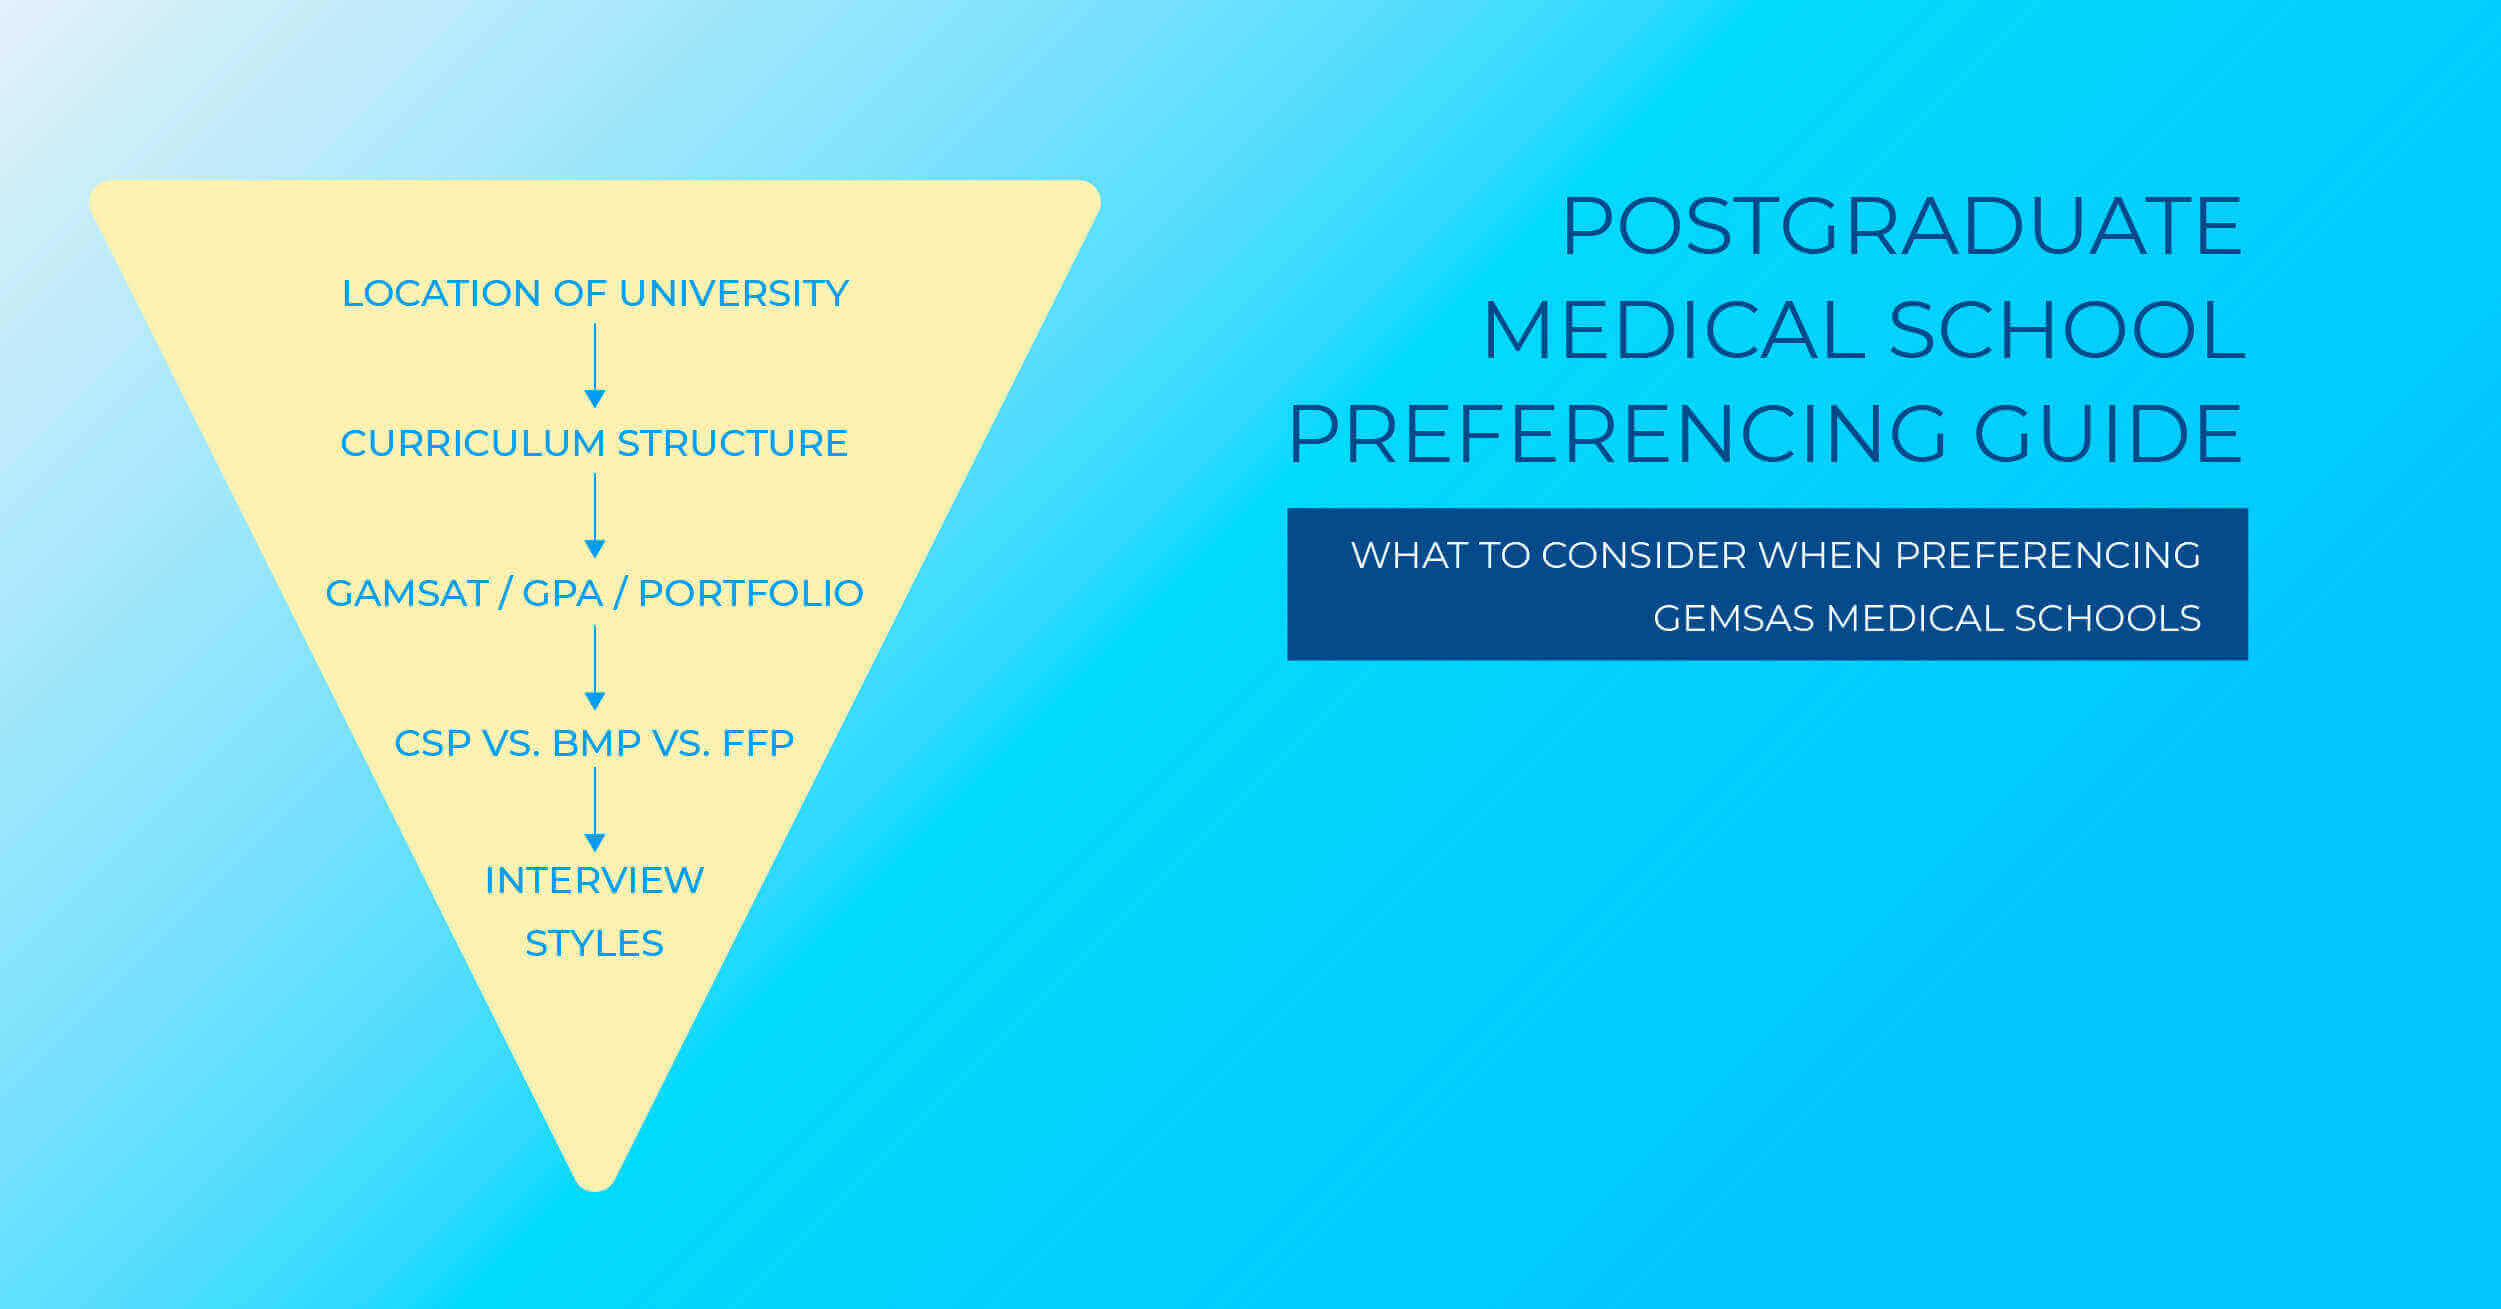 Postgraduate Medical School Preferencing Guide featured image